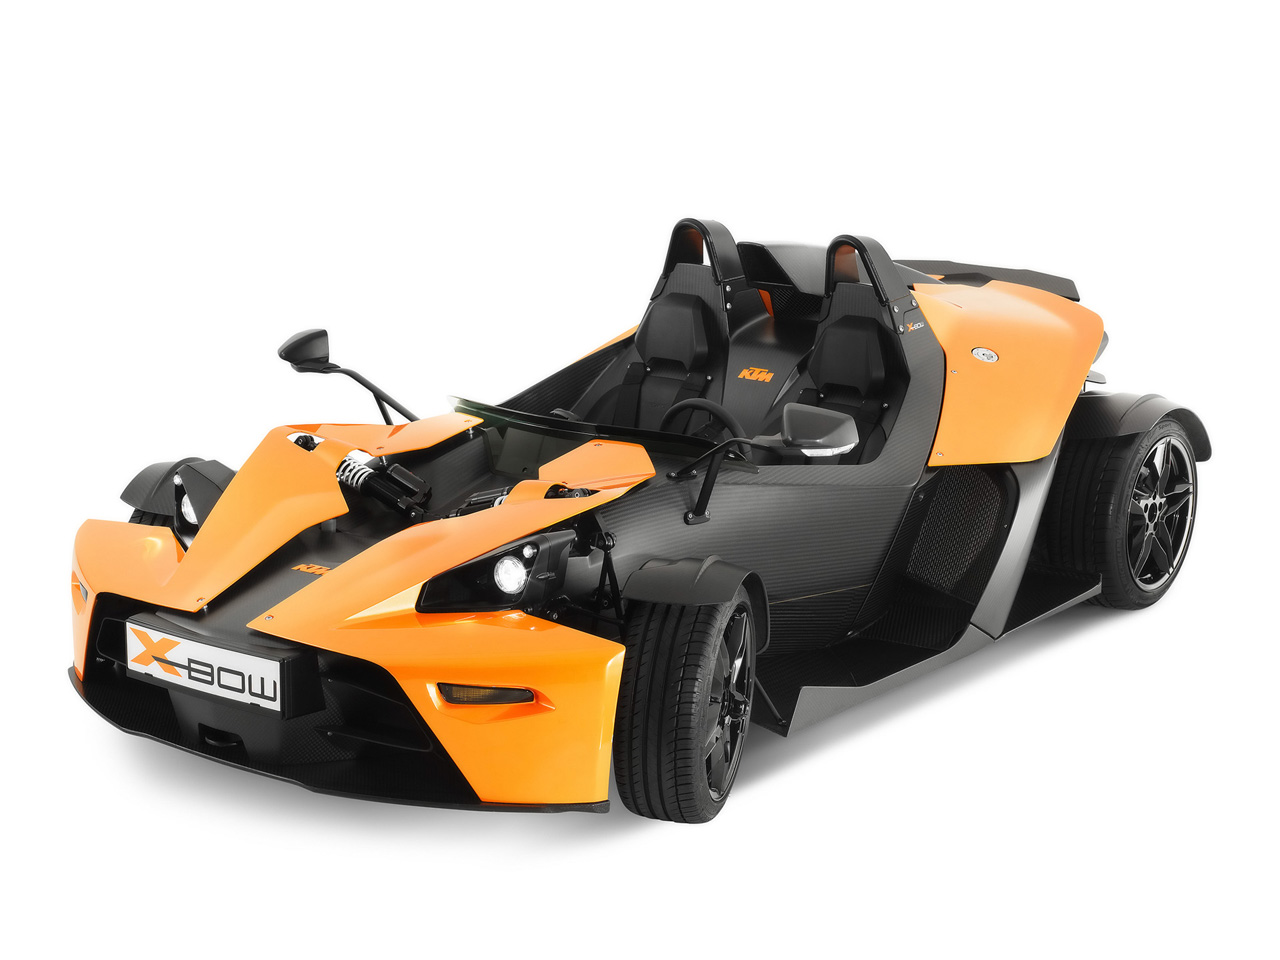 Ktm Offers 134 Mph Street Legal Go Kart Racer